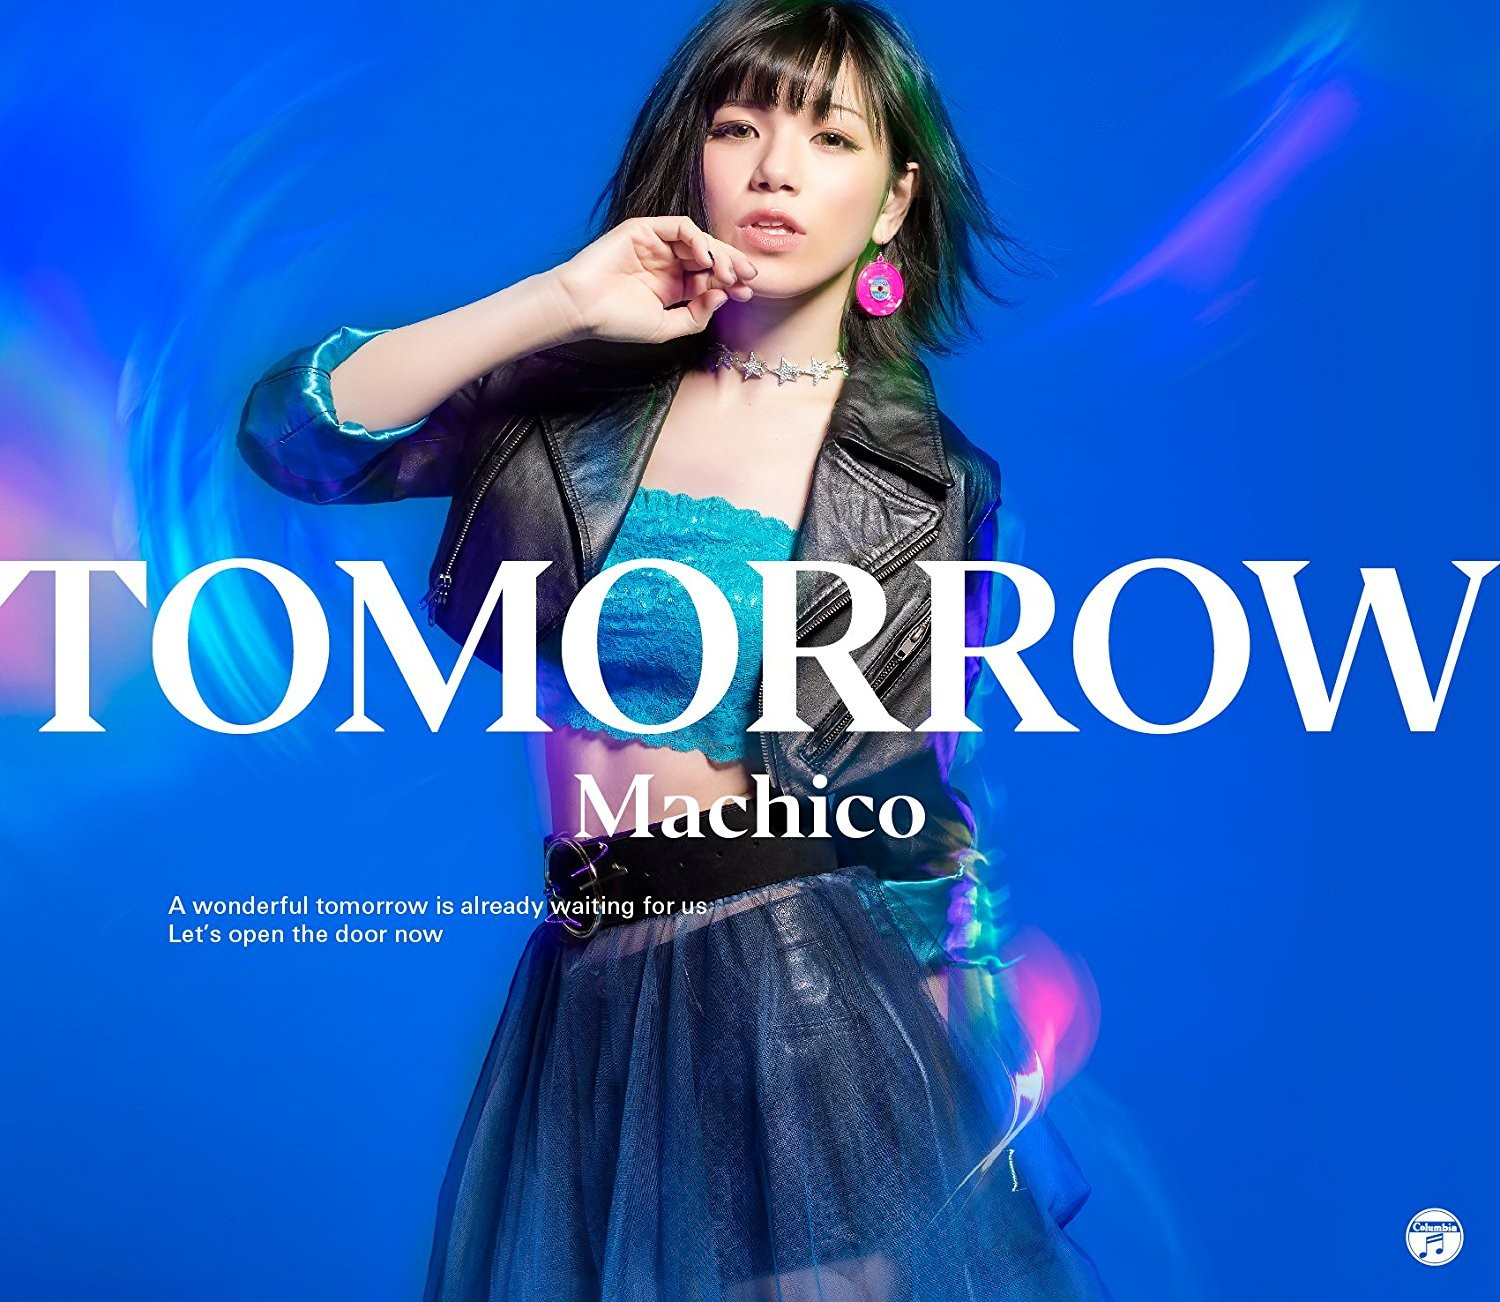 20170227.01.13 Machico - Tomorrow cover.jpg